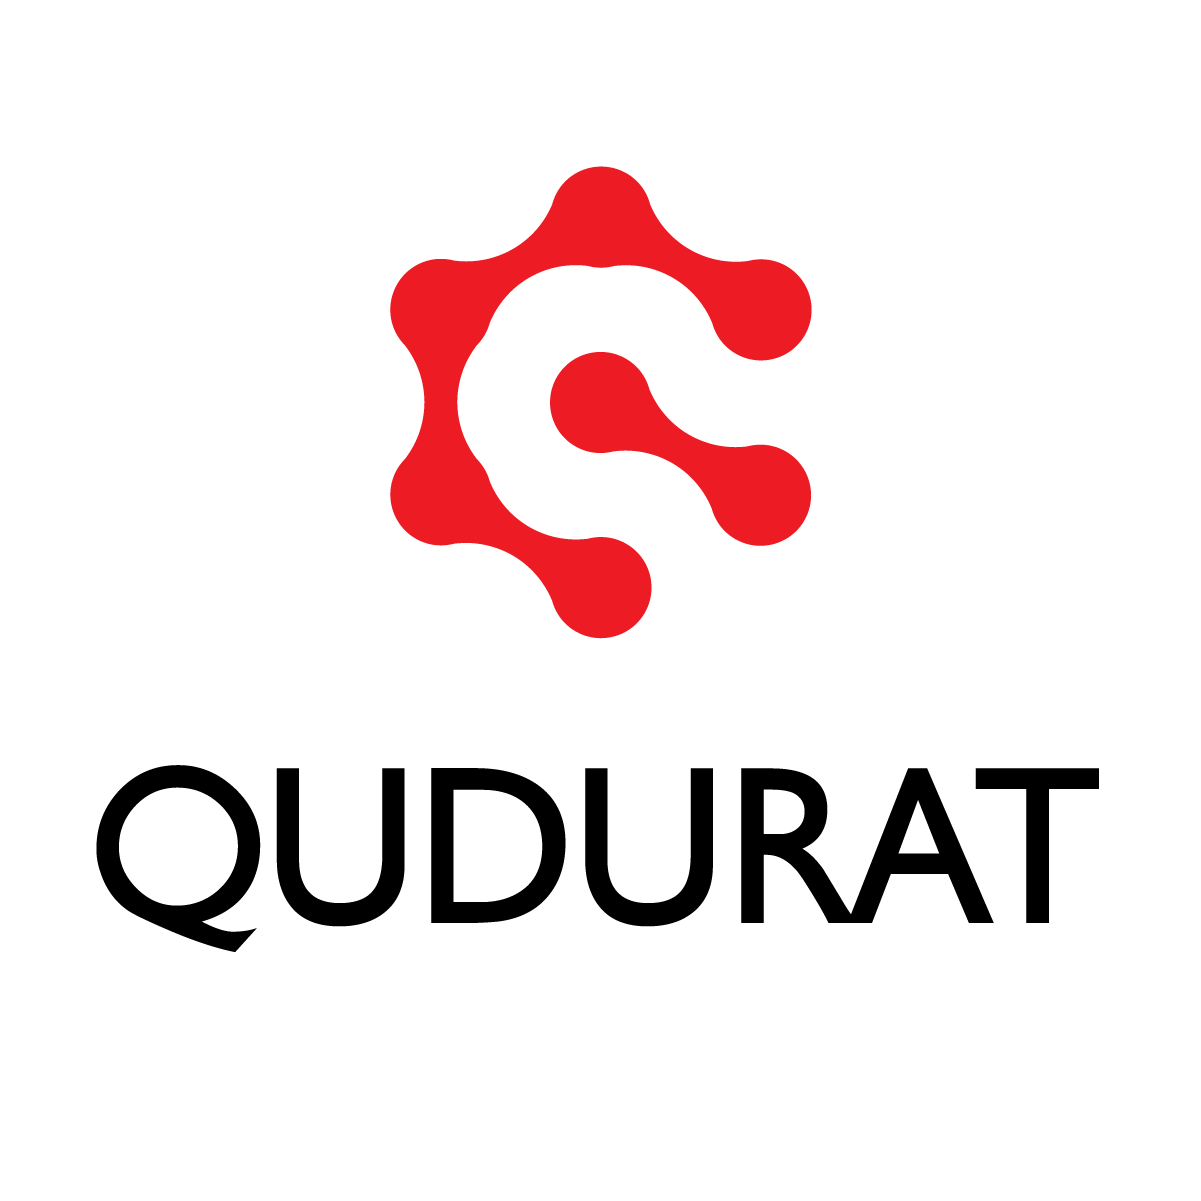 seeking newcomers to meet prospective employers at qudurat fair job seeking newcomers to meet prospective employers at qudurat fair